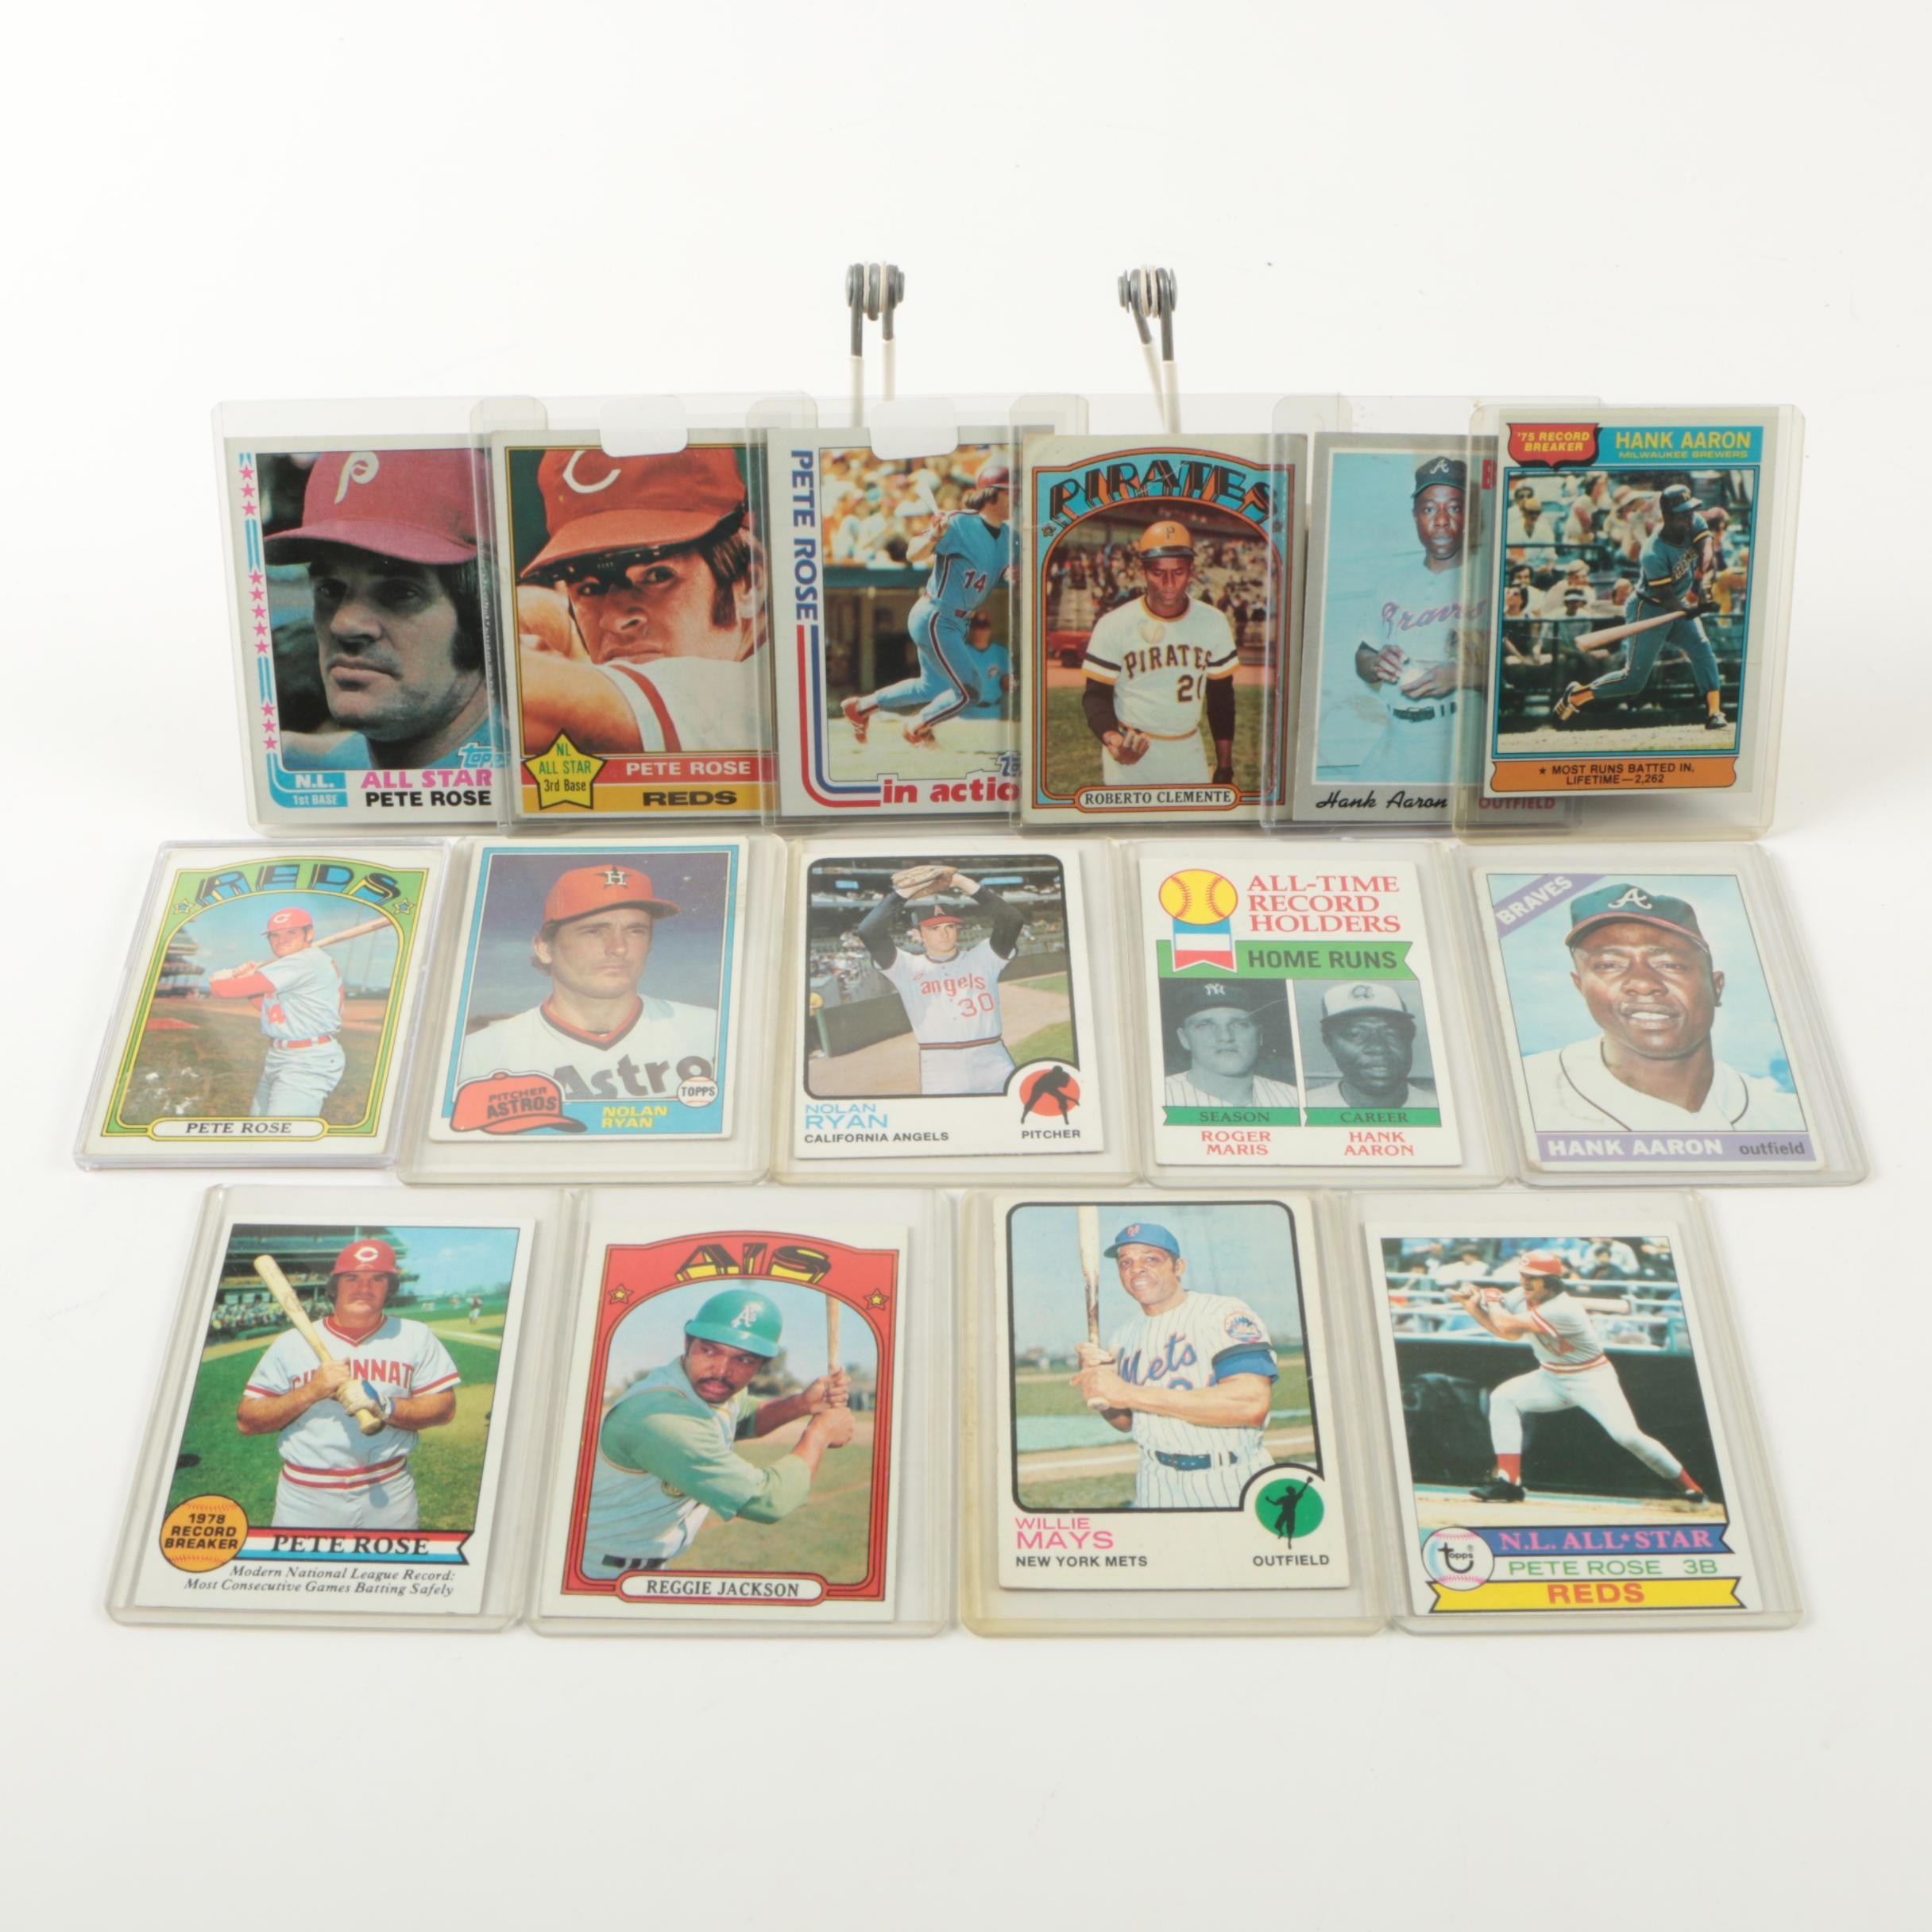 Baseball Card Collection Including Pete Rose